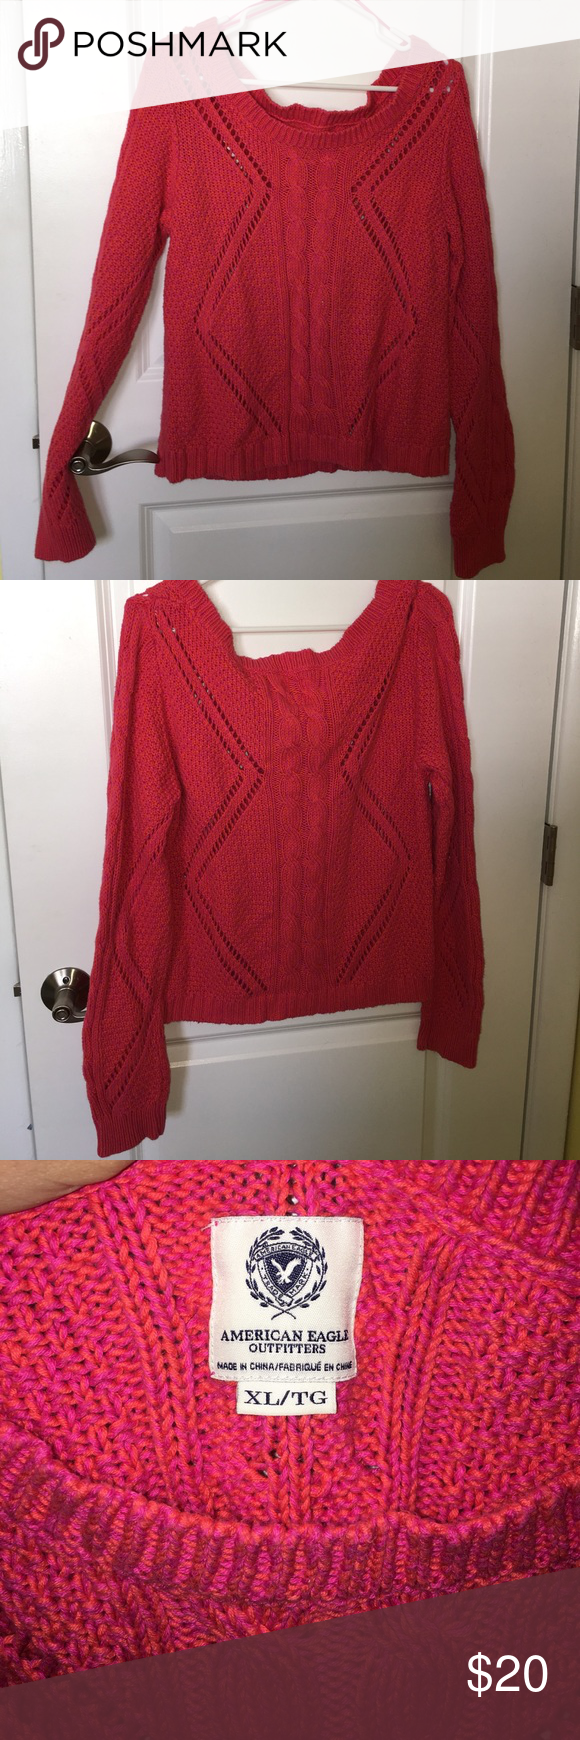 American eagle off the shoulder sweater Orange and pink knit, off ...